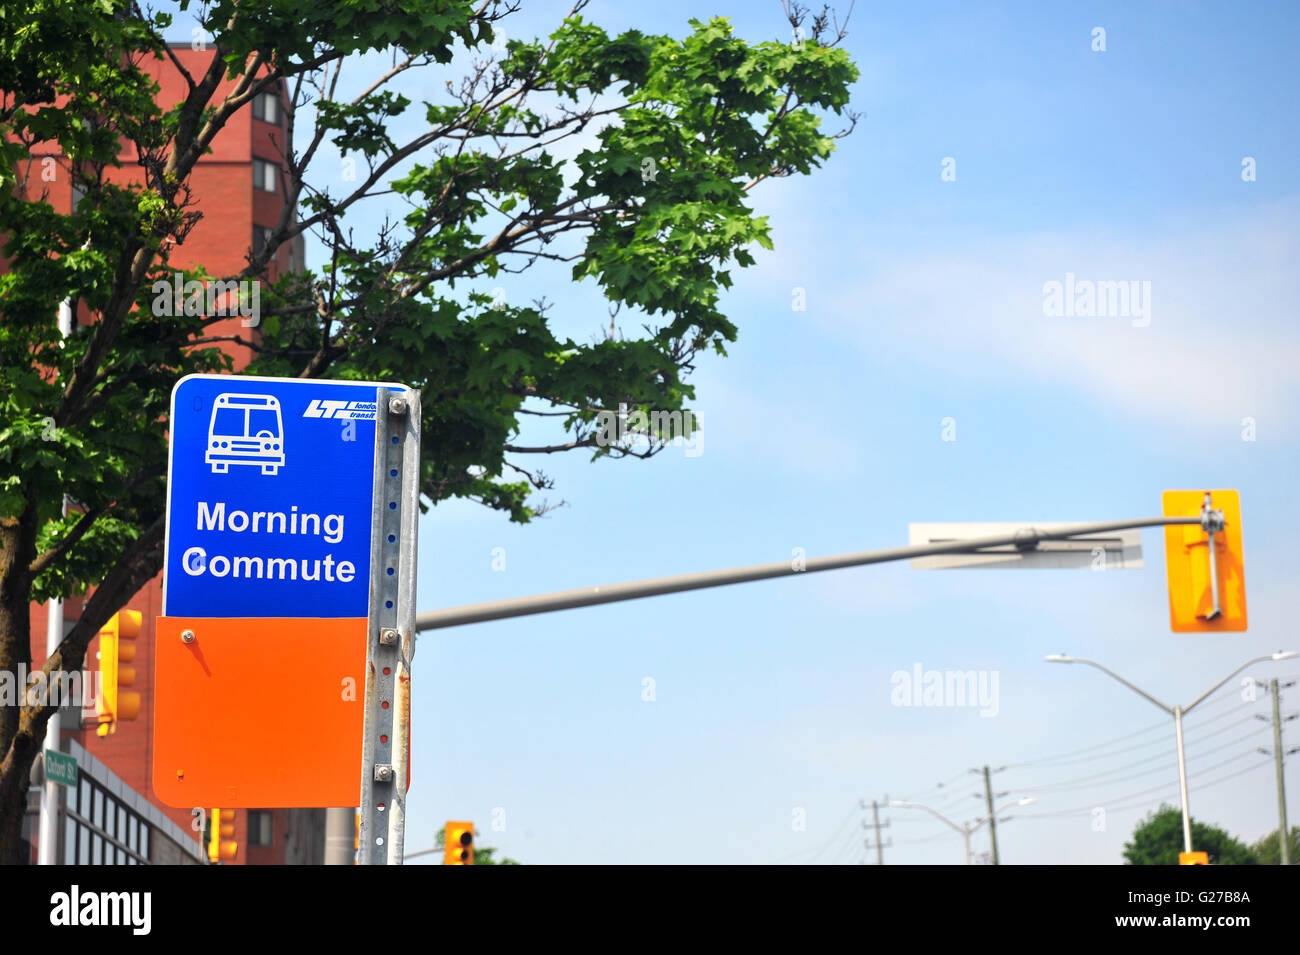 A bus sign with Morning Commute written on it in London, Ontario in Canada. - Stock Image